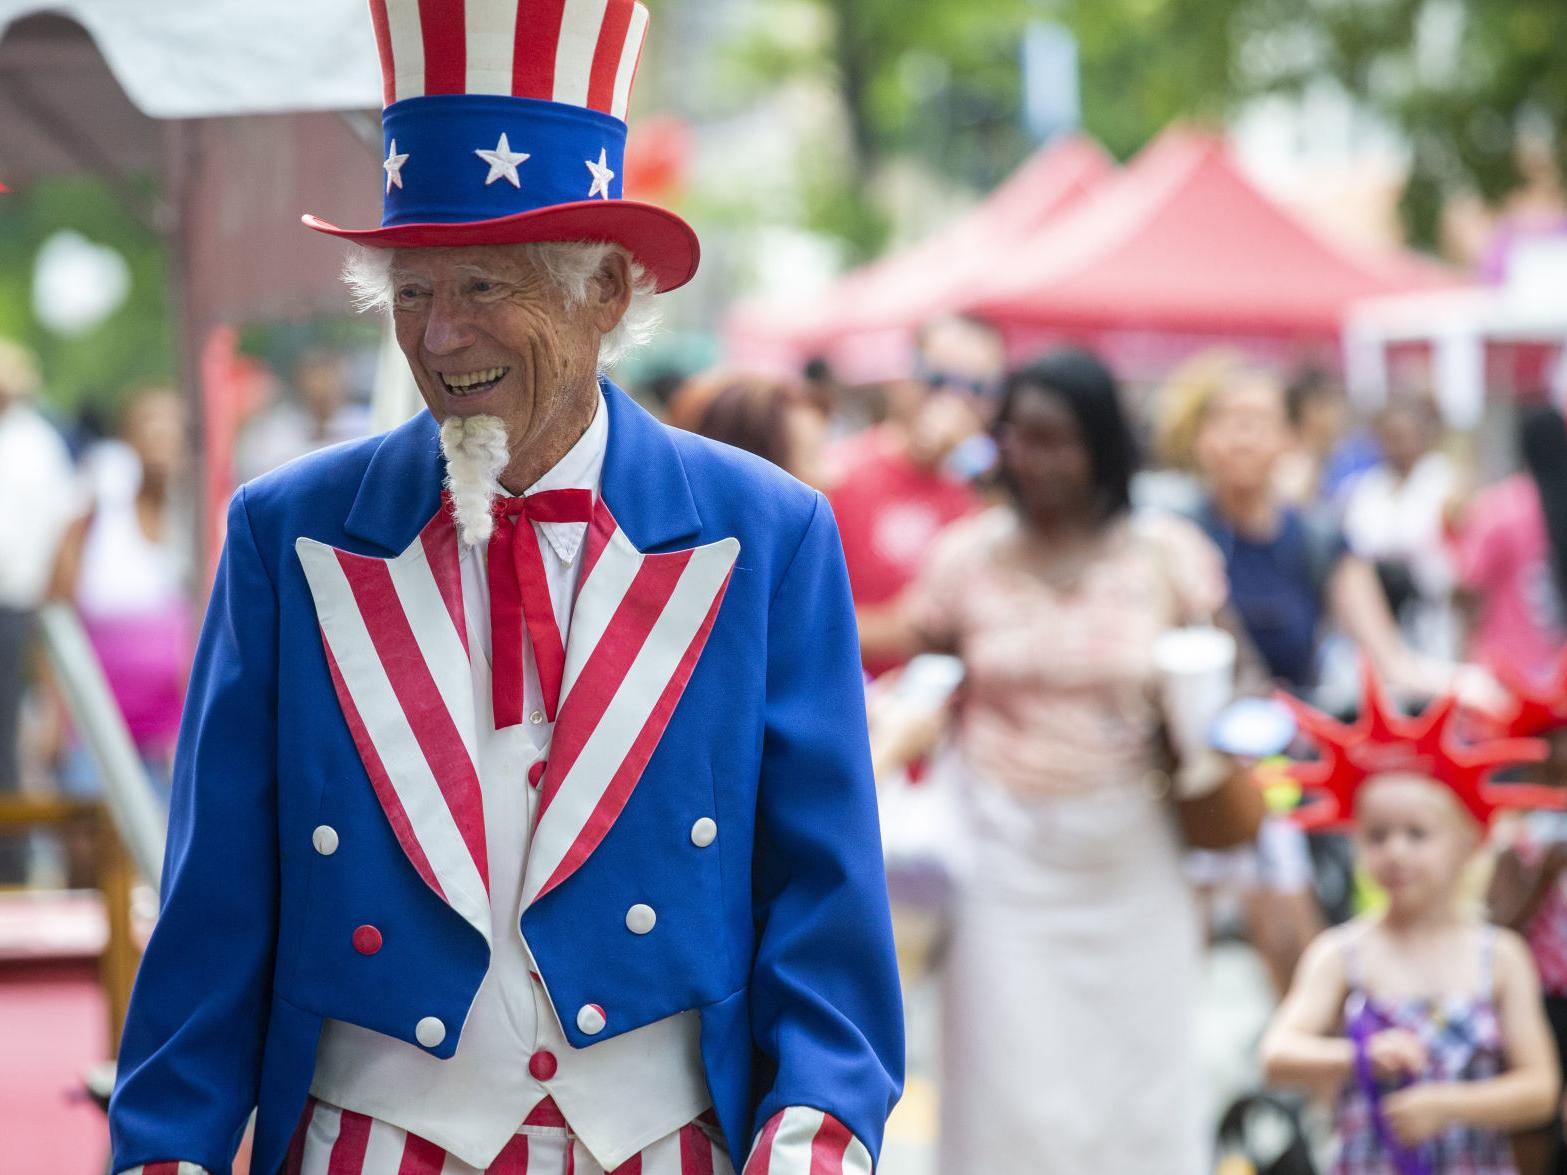 Downtown Greensboro's Fun Fourth canceled for 2020, though safe-distance  fireworks show might happen   Blog: Go Triad - A&E Extra   greensboro.com